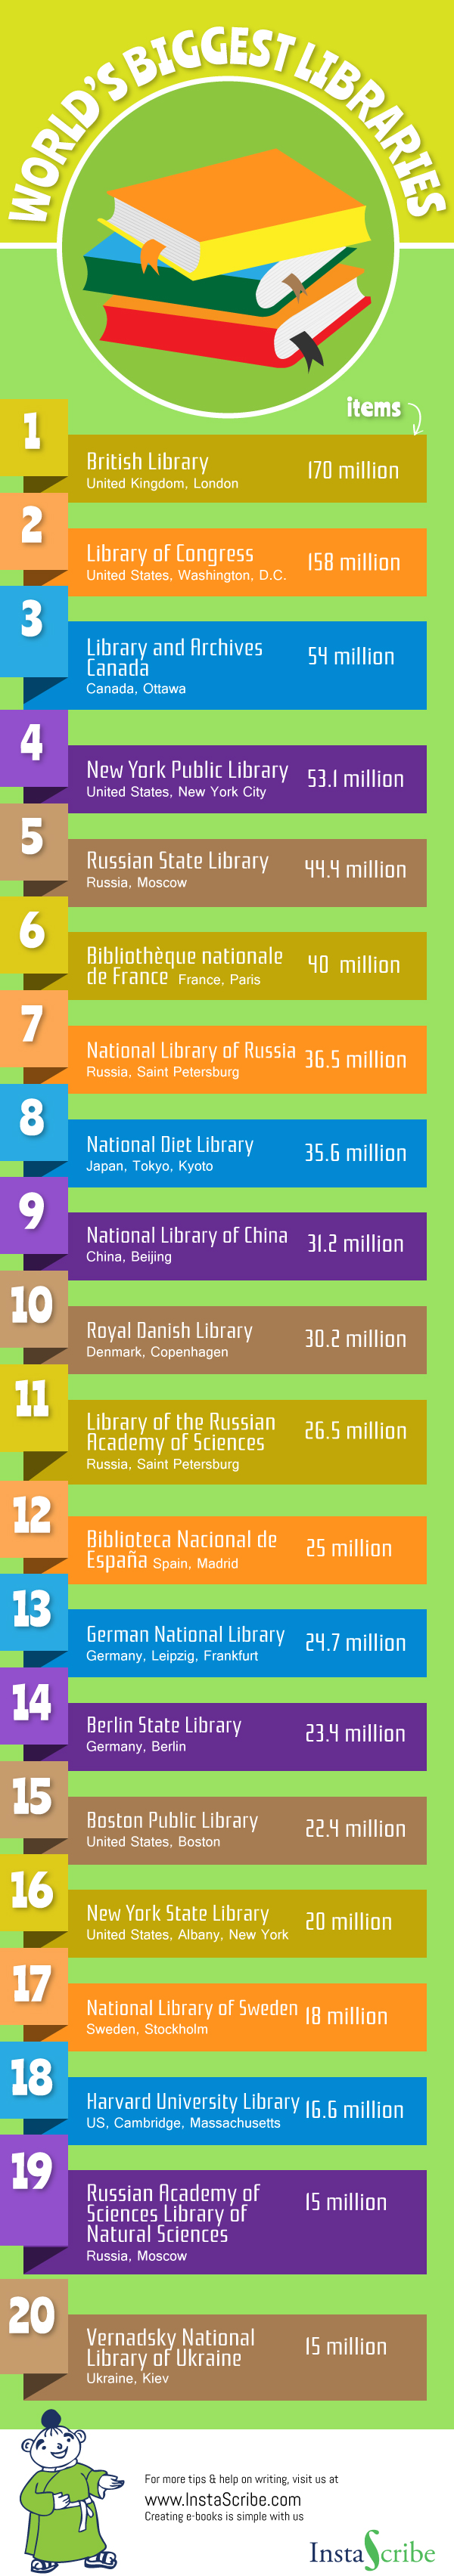 World's Biggest Libraries